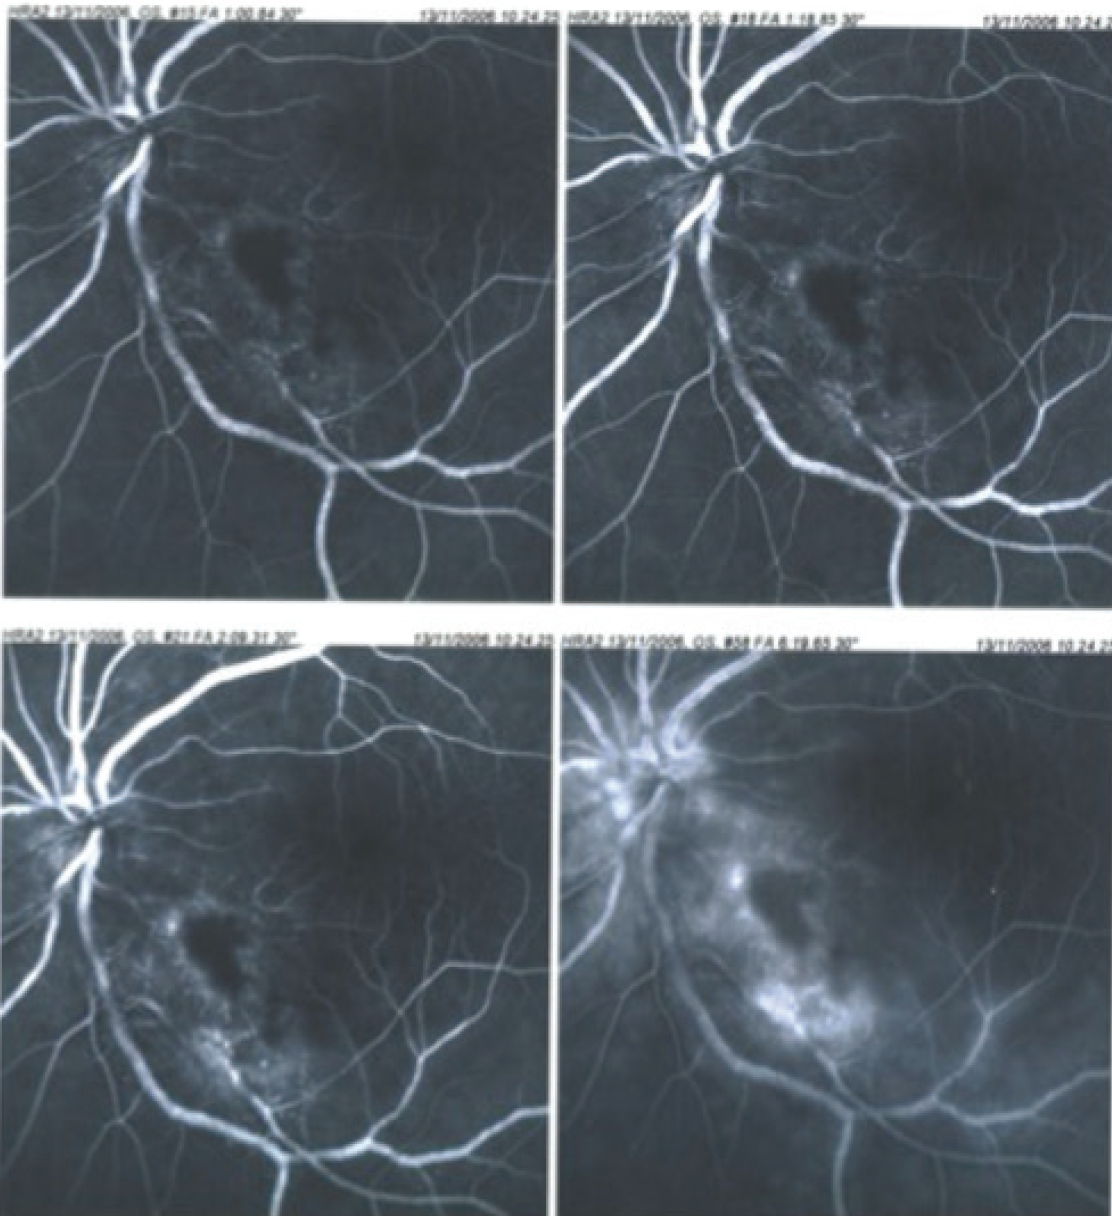 Retina Today - Papillophlebitis: a Closer Look (July/August